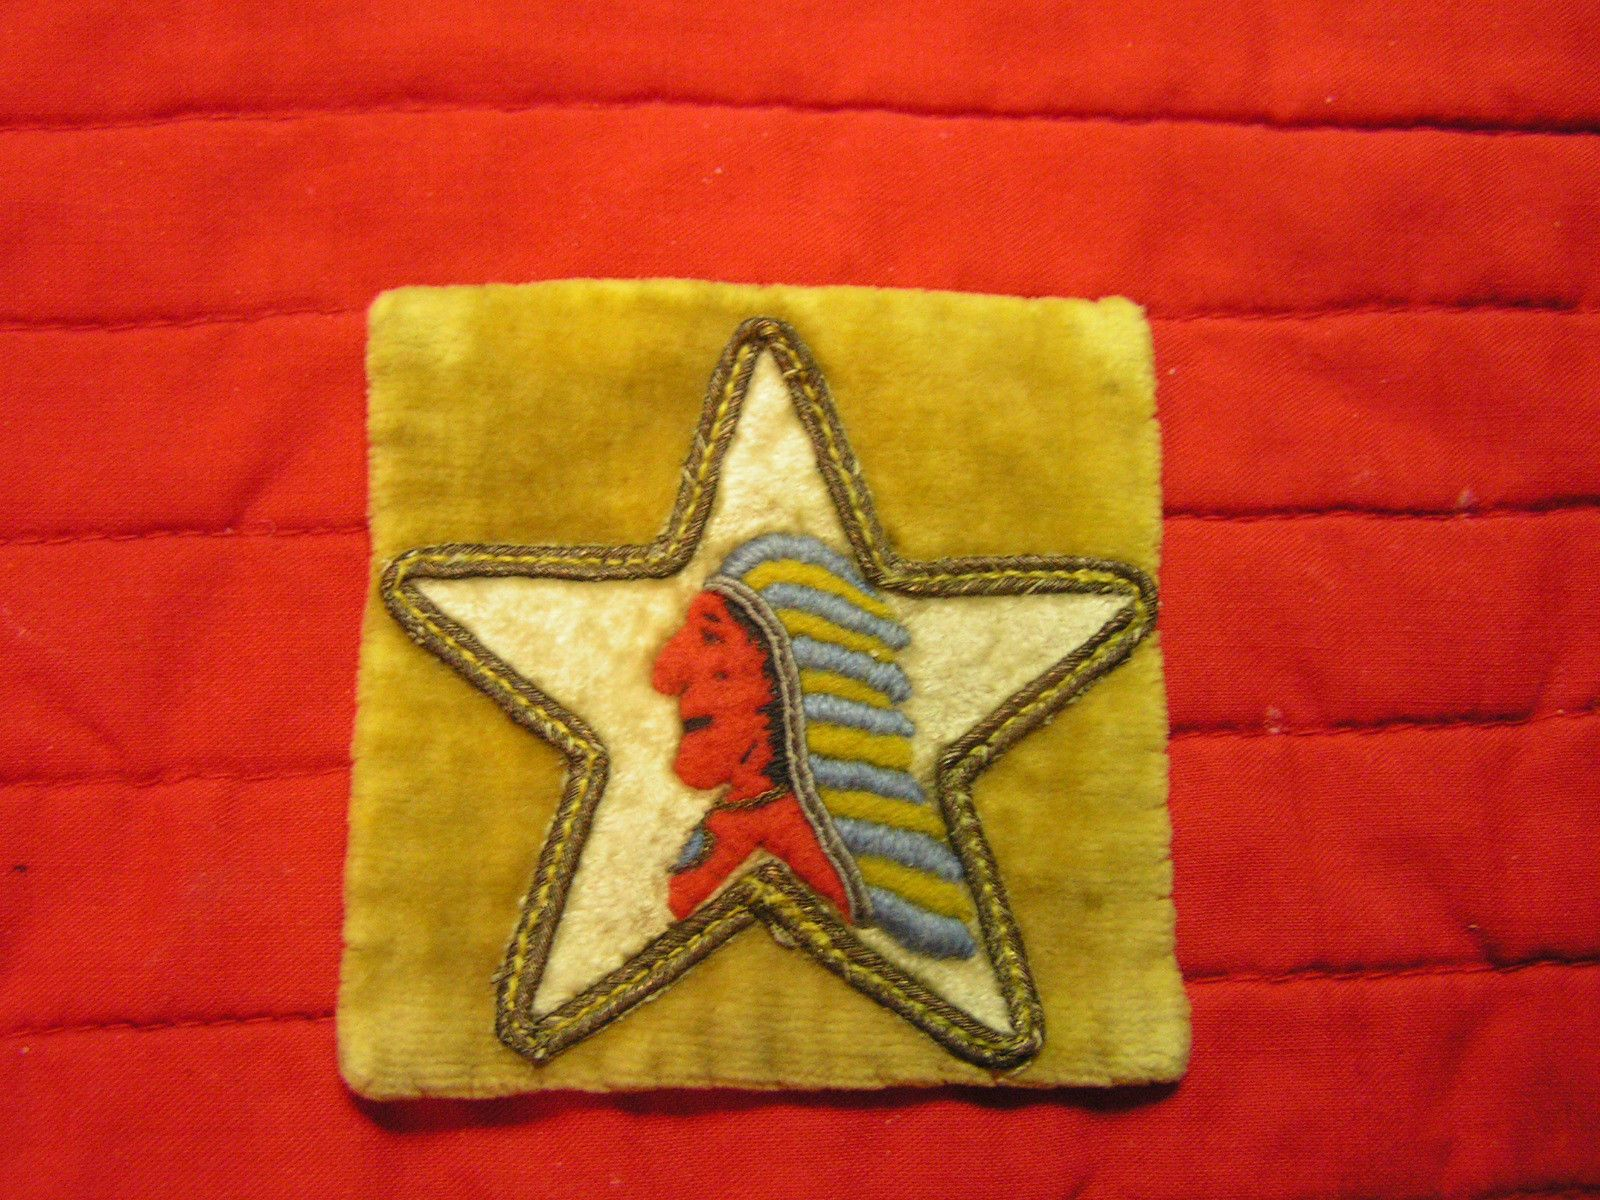 Details about 2ND BATTALION 5TH MARINES WWI PATCH EXCEPTIONALLY RARE